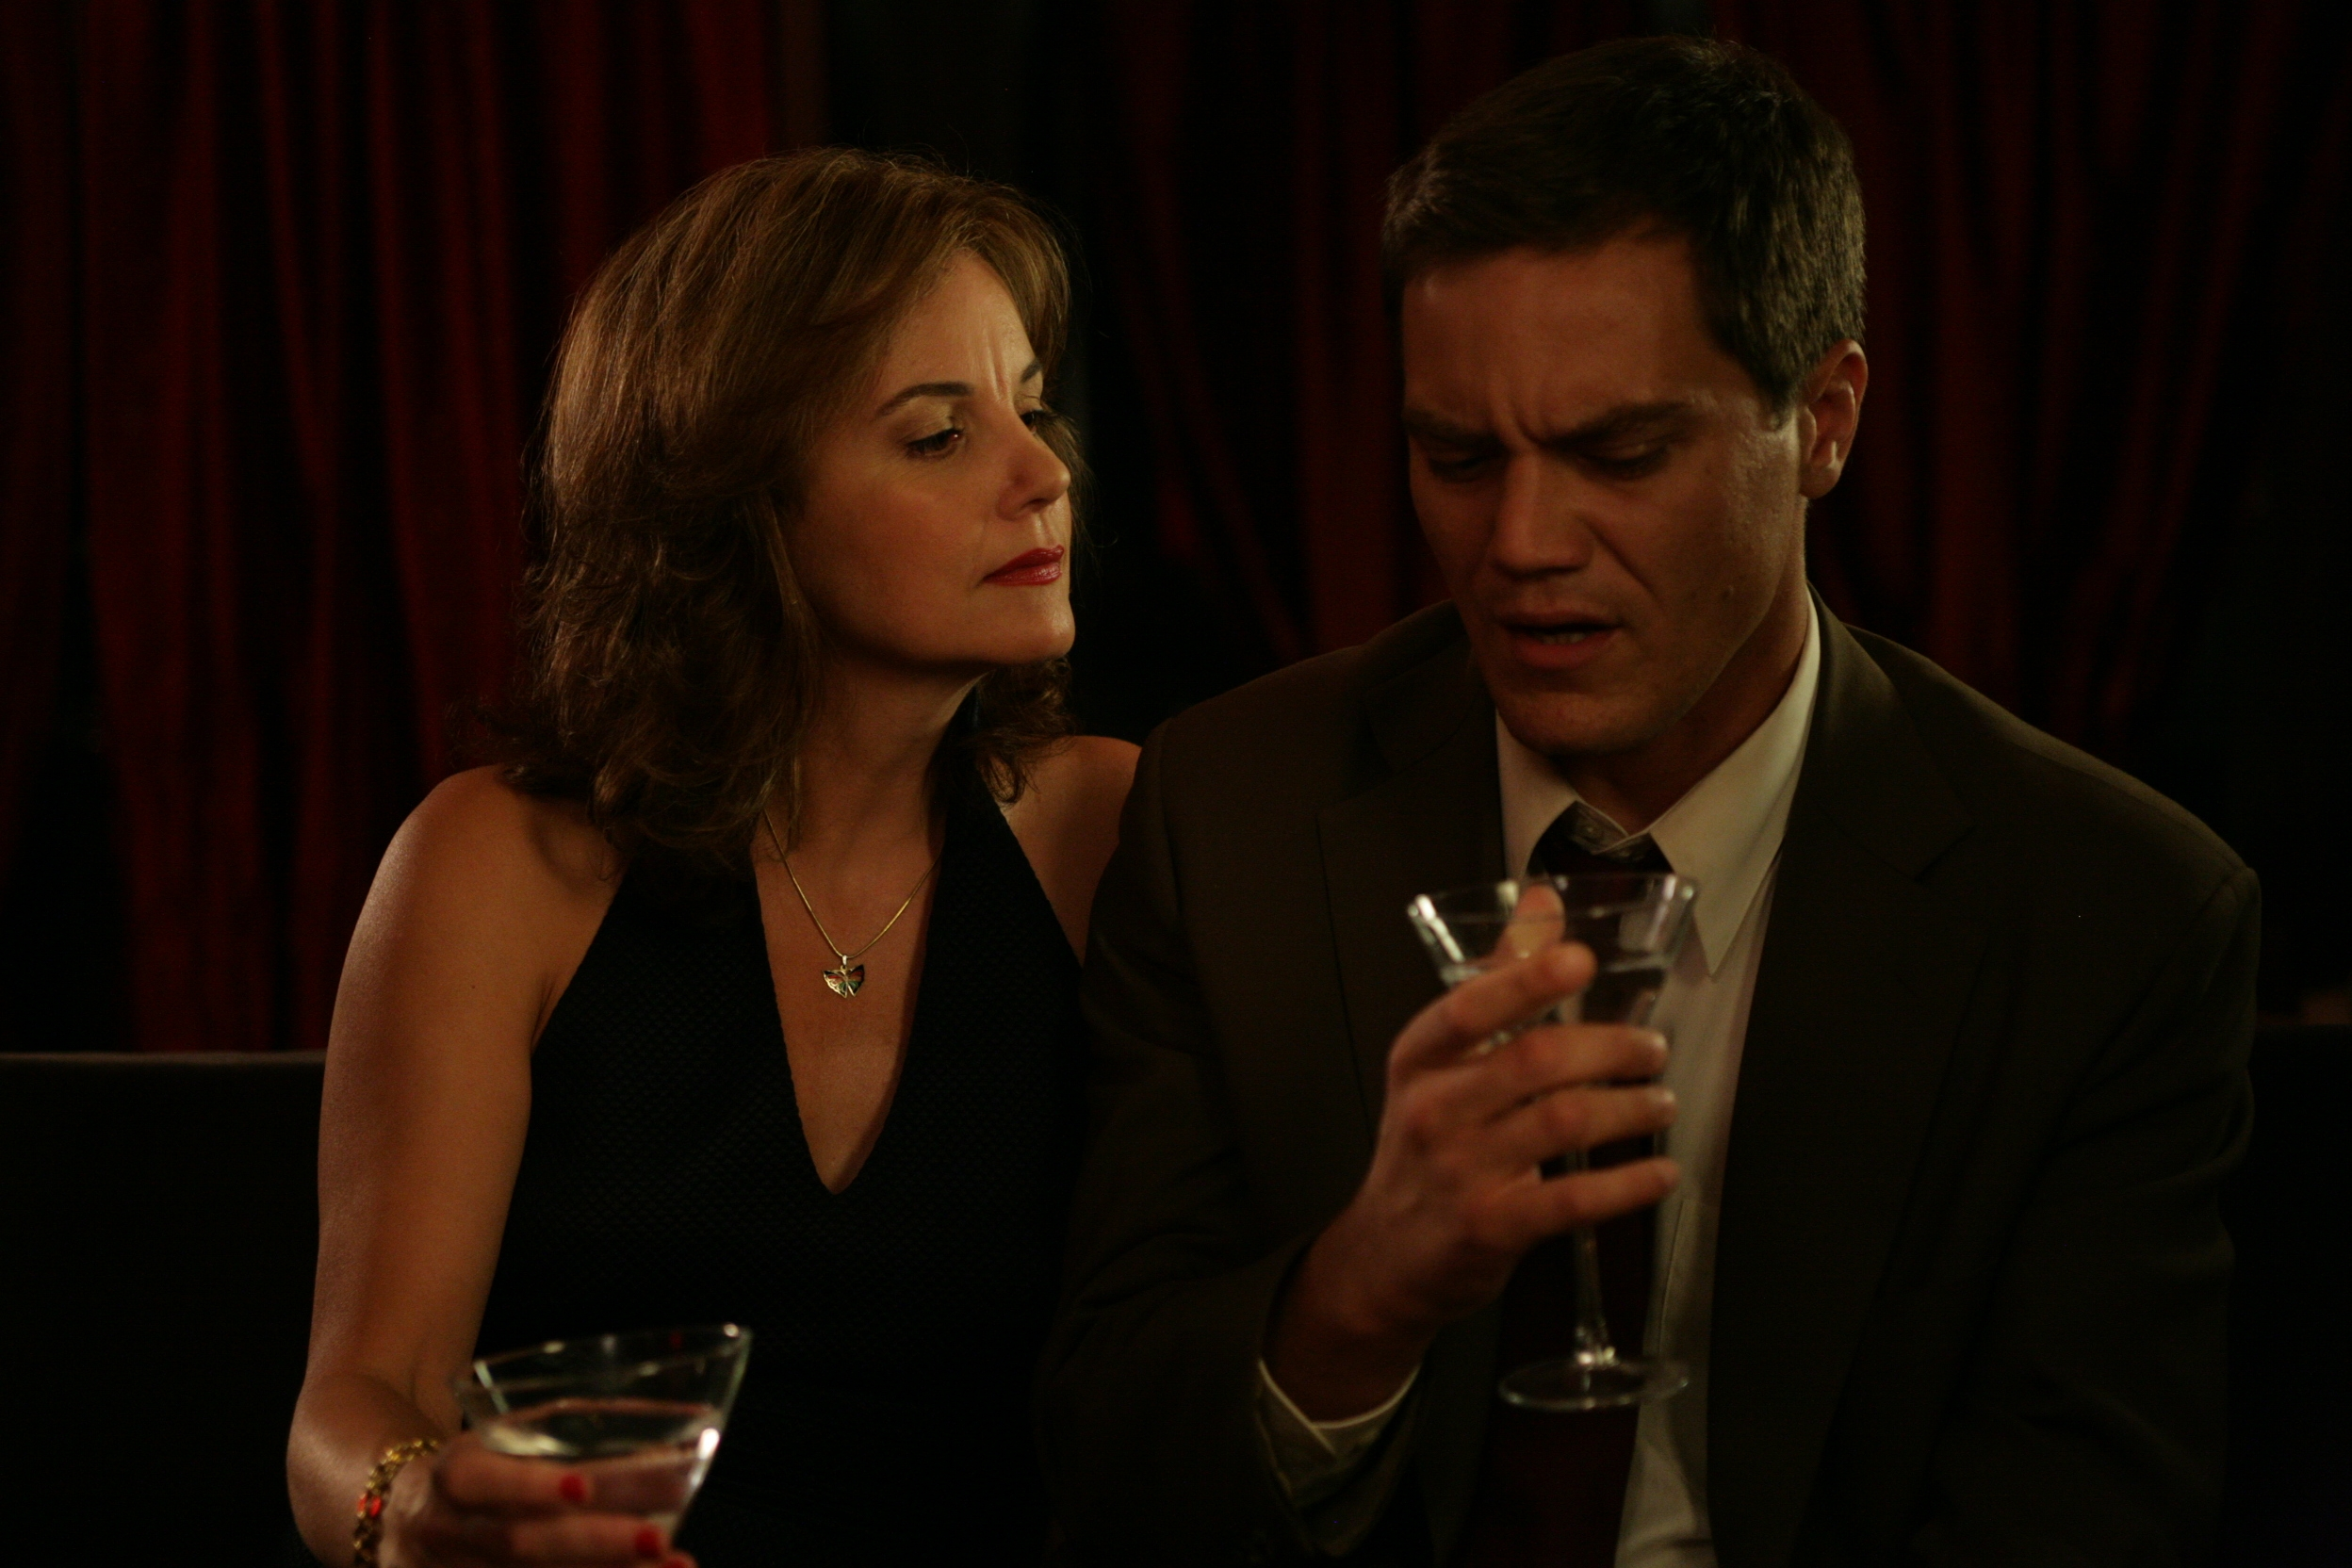 Margaret Colin and Michael Shannon